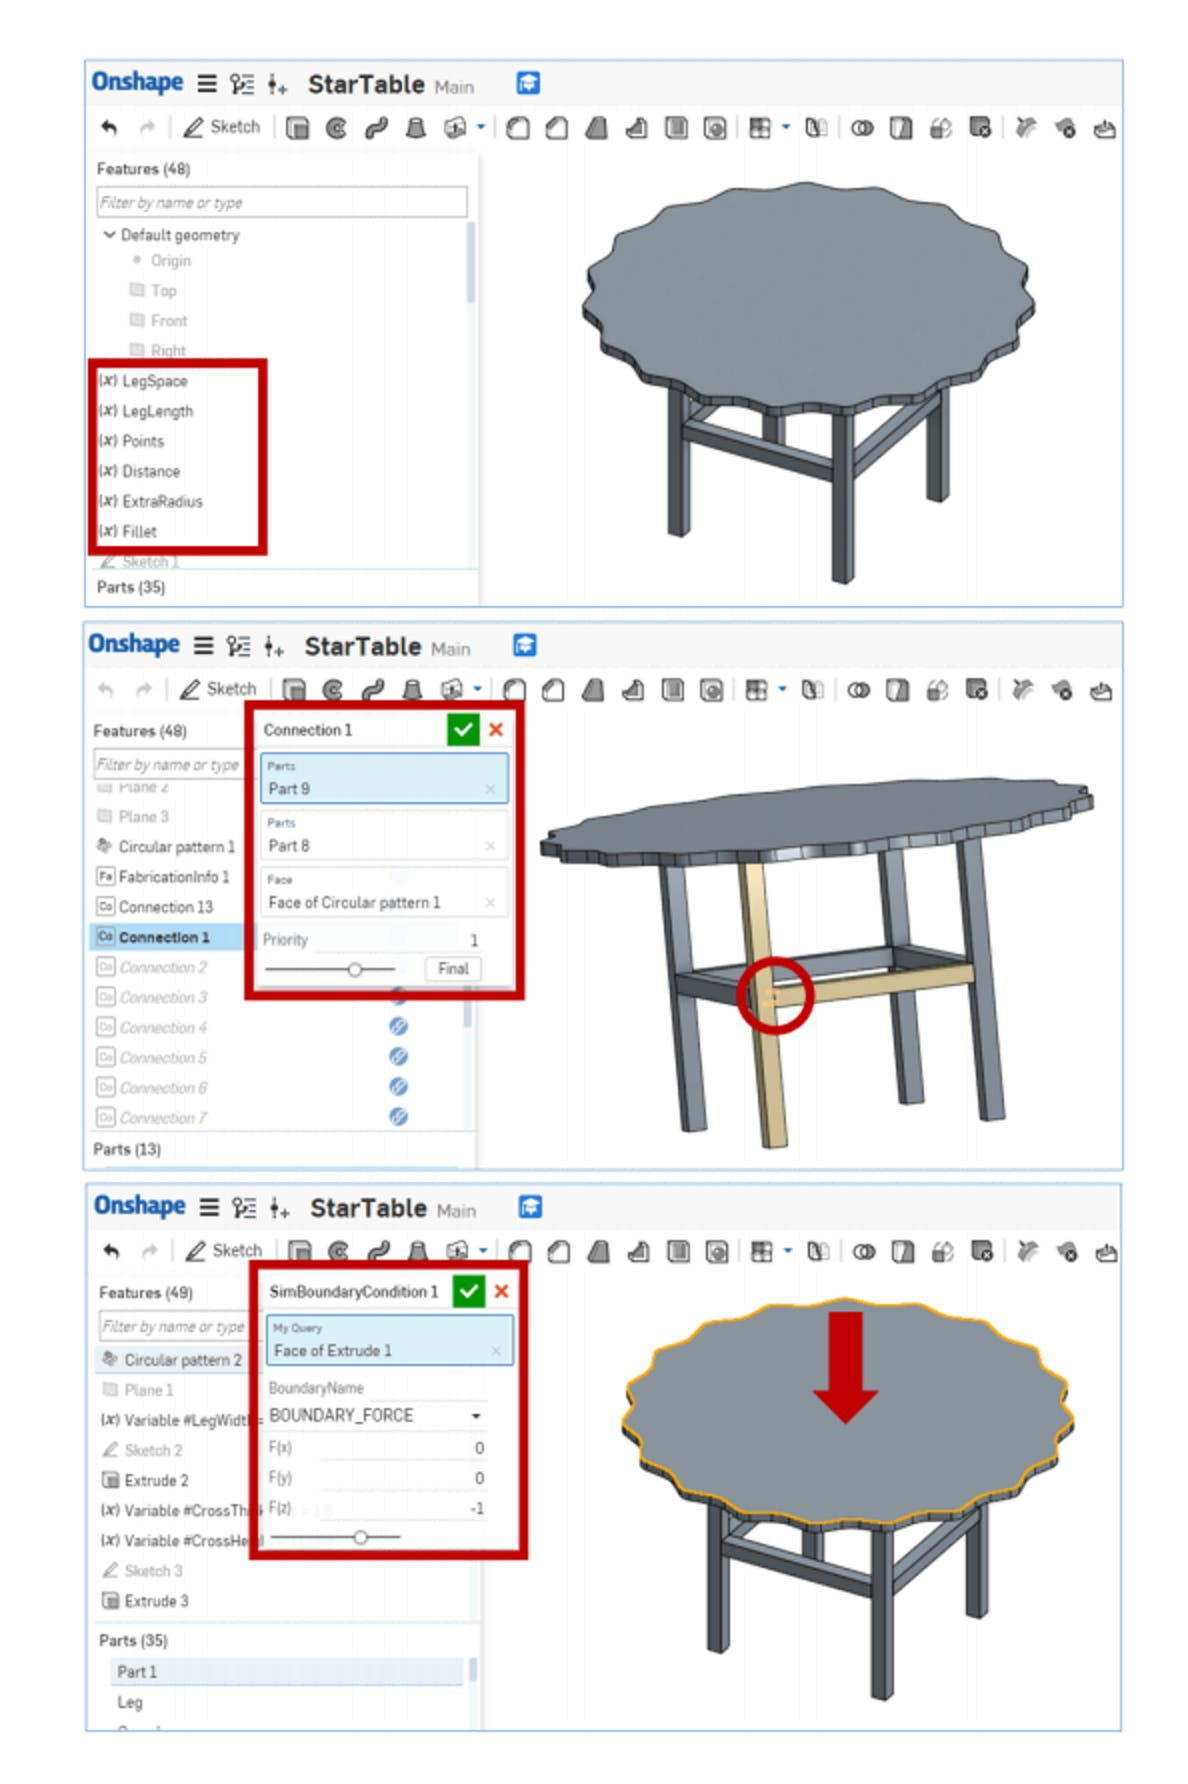 The experts use this software feature to define all of the connections on the model and those are used by AutoSaw's algorithm to automatically generate assembly instructions.